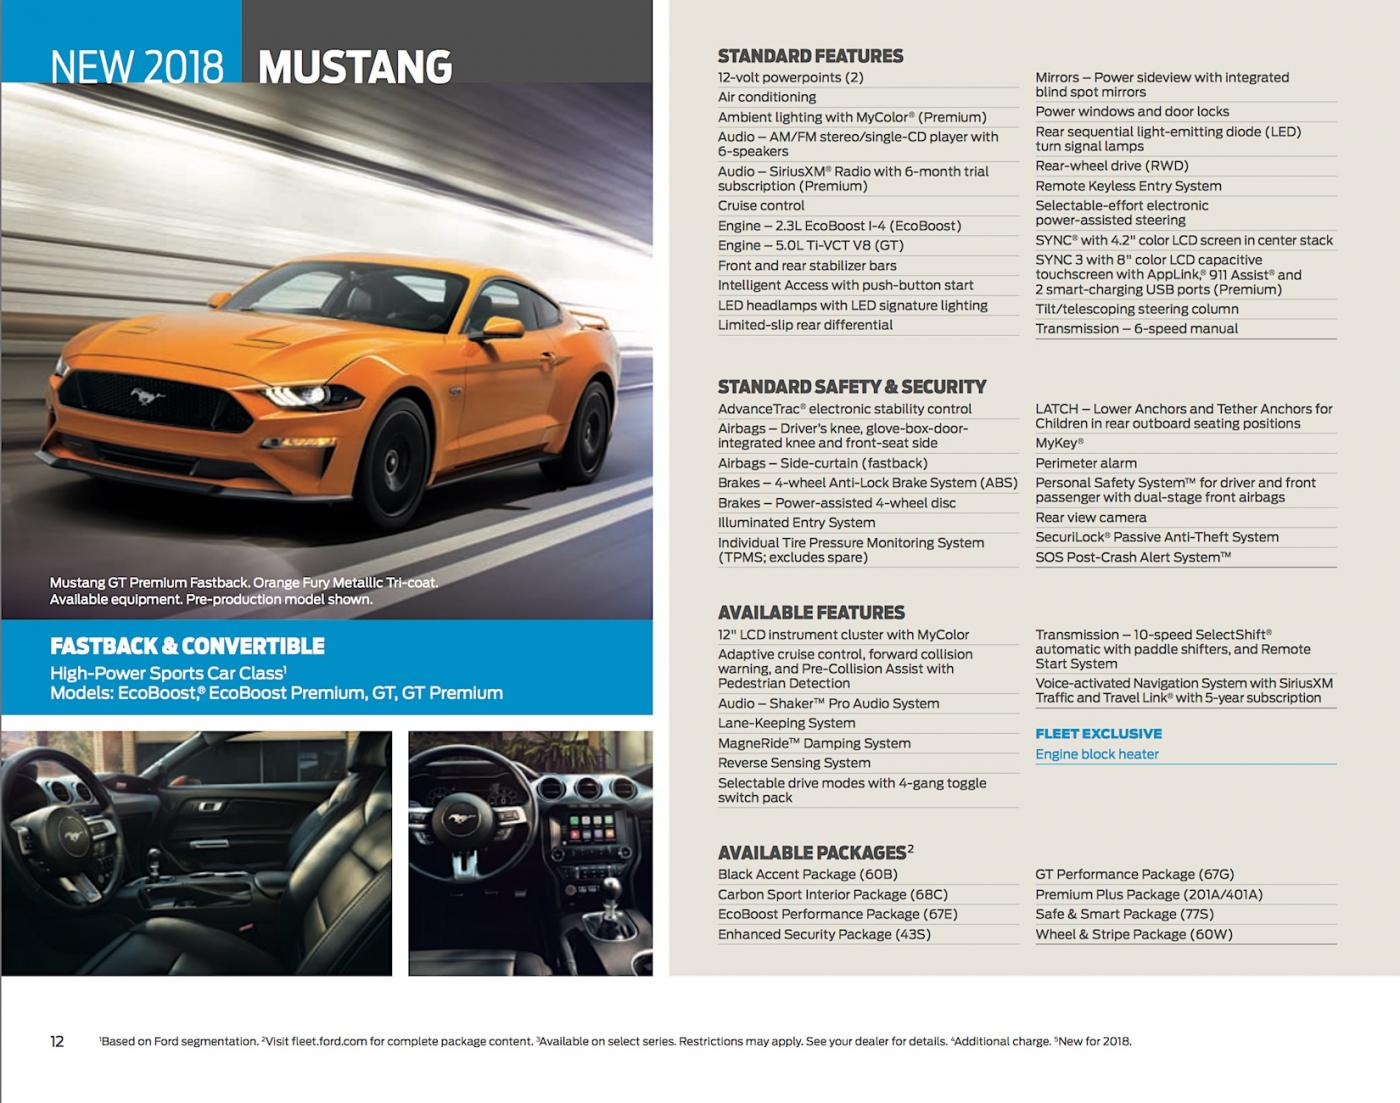 Ford Mustang Brochure Reveals New Features And Options